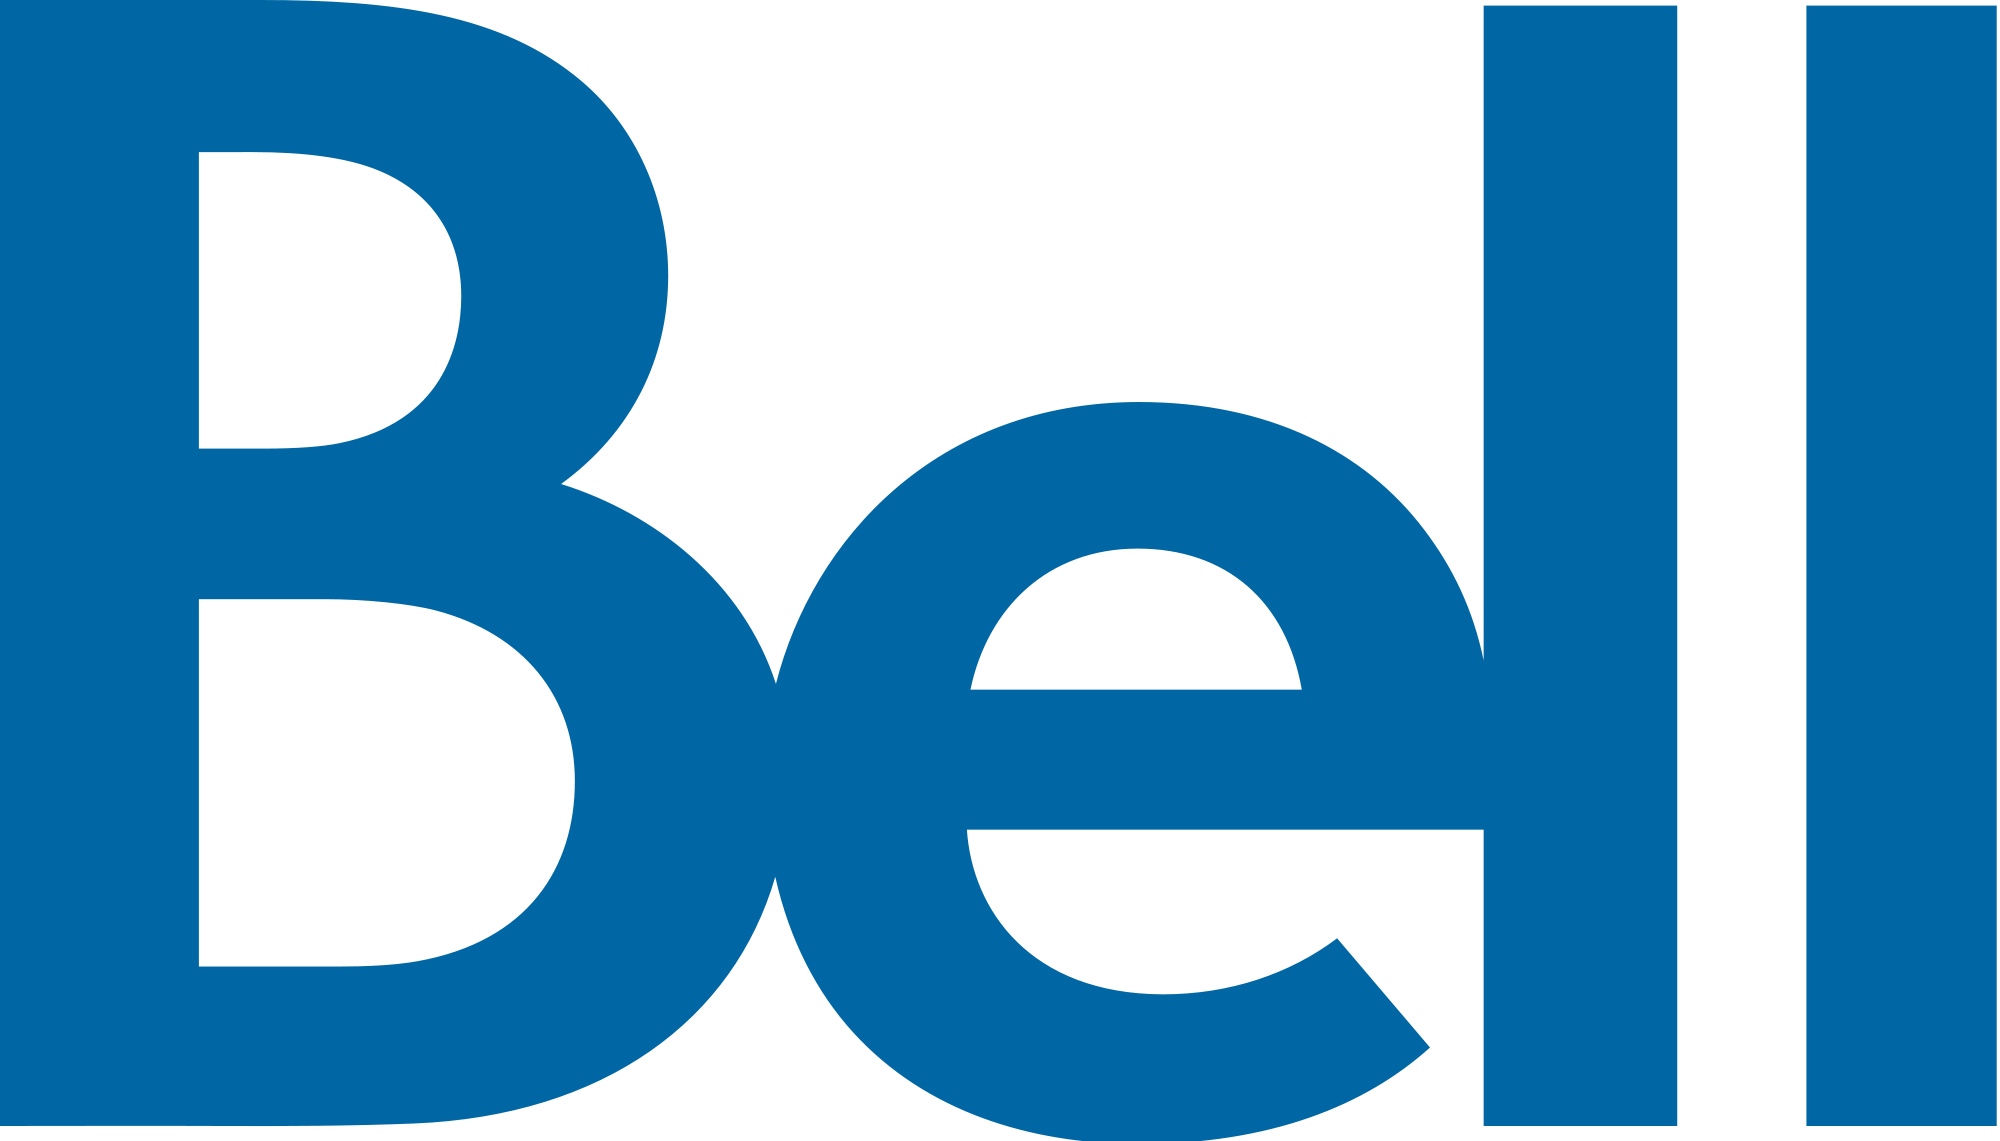 bell_logo.png